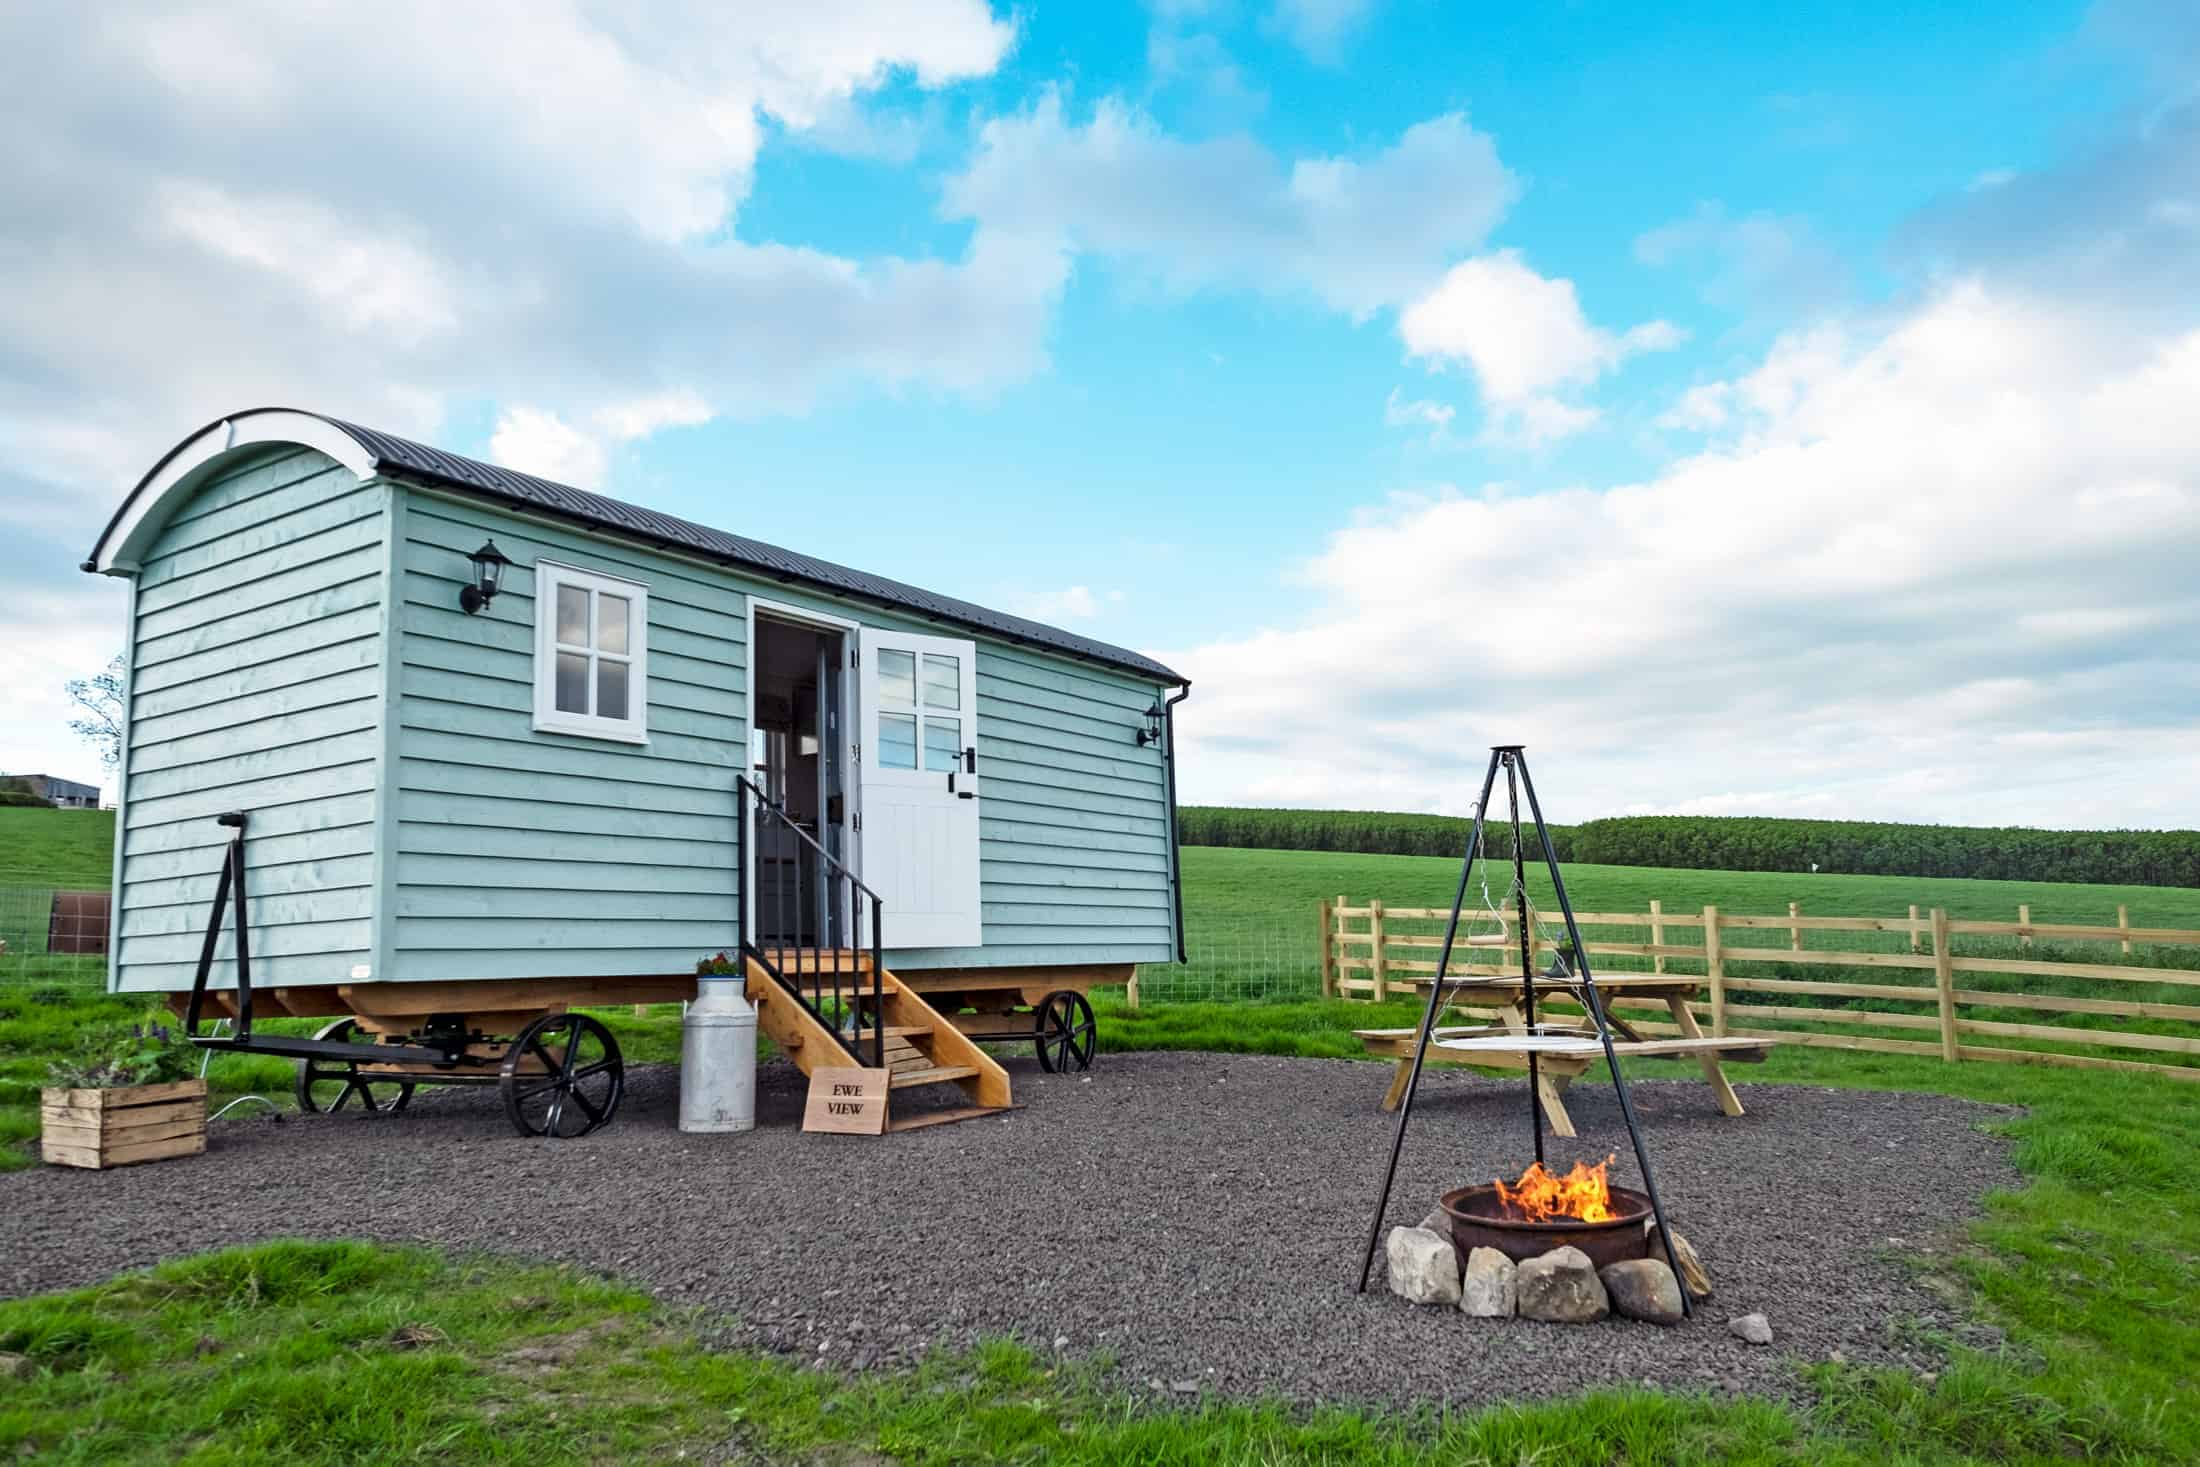 Farm stay scotland, Craigduckie Shepherds Huts